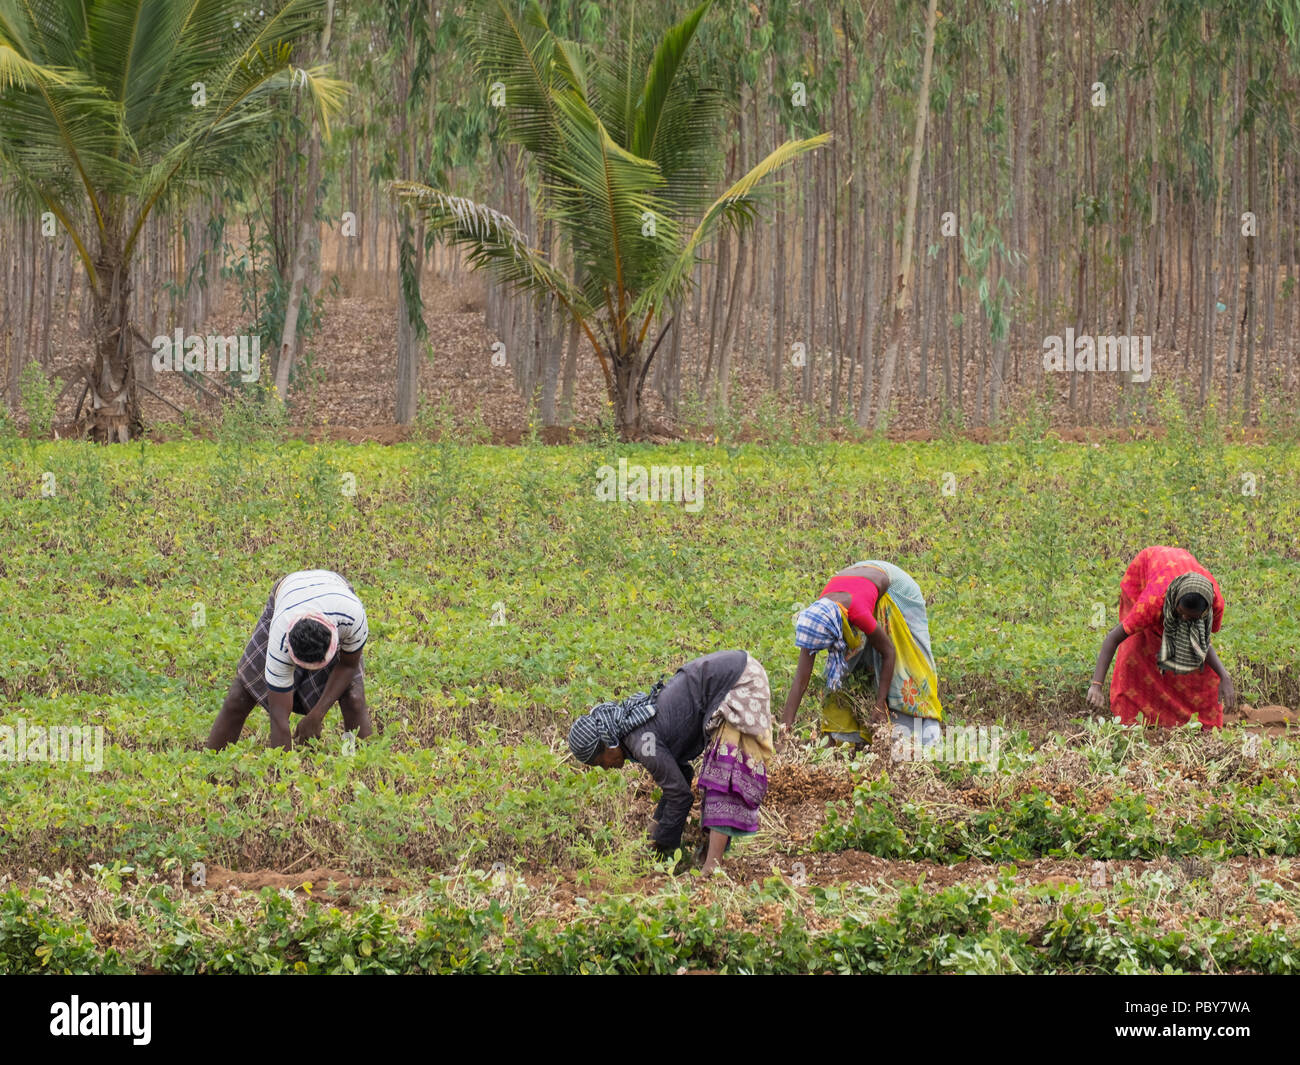 Thanjavur, India - March 13, 2018: Agricultural workers harvesting a crop of groundnuts ( Arachis hypogaea ) in the southern Indian state - Stock Image